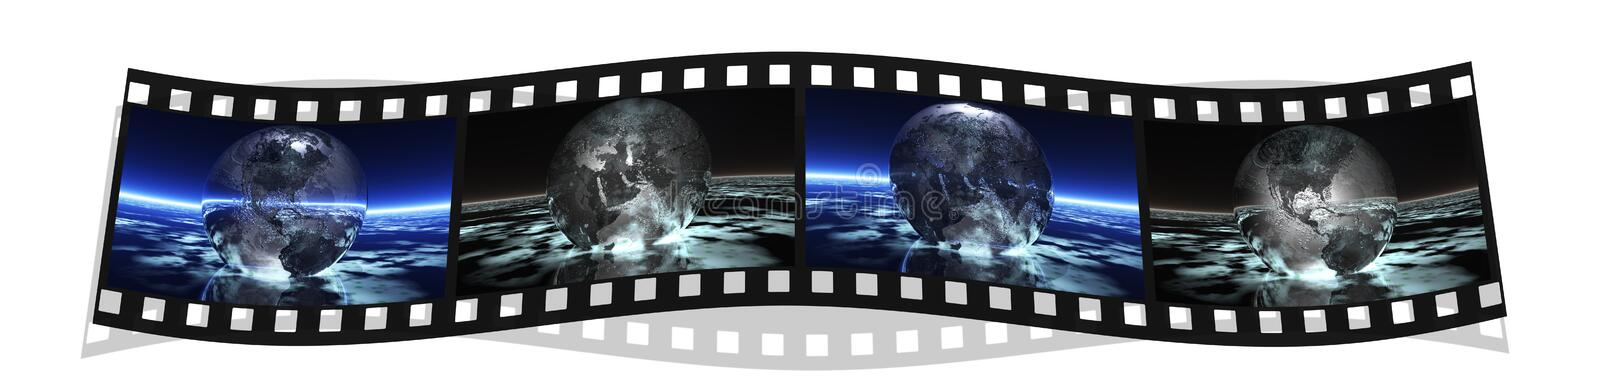 Film stripe with 4 images of the earth stock illustration